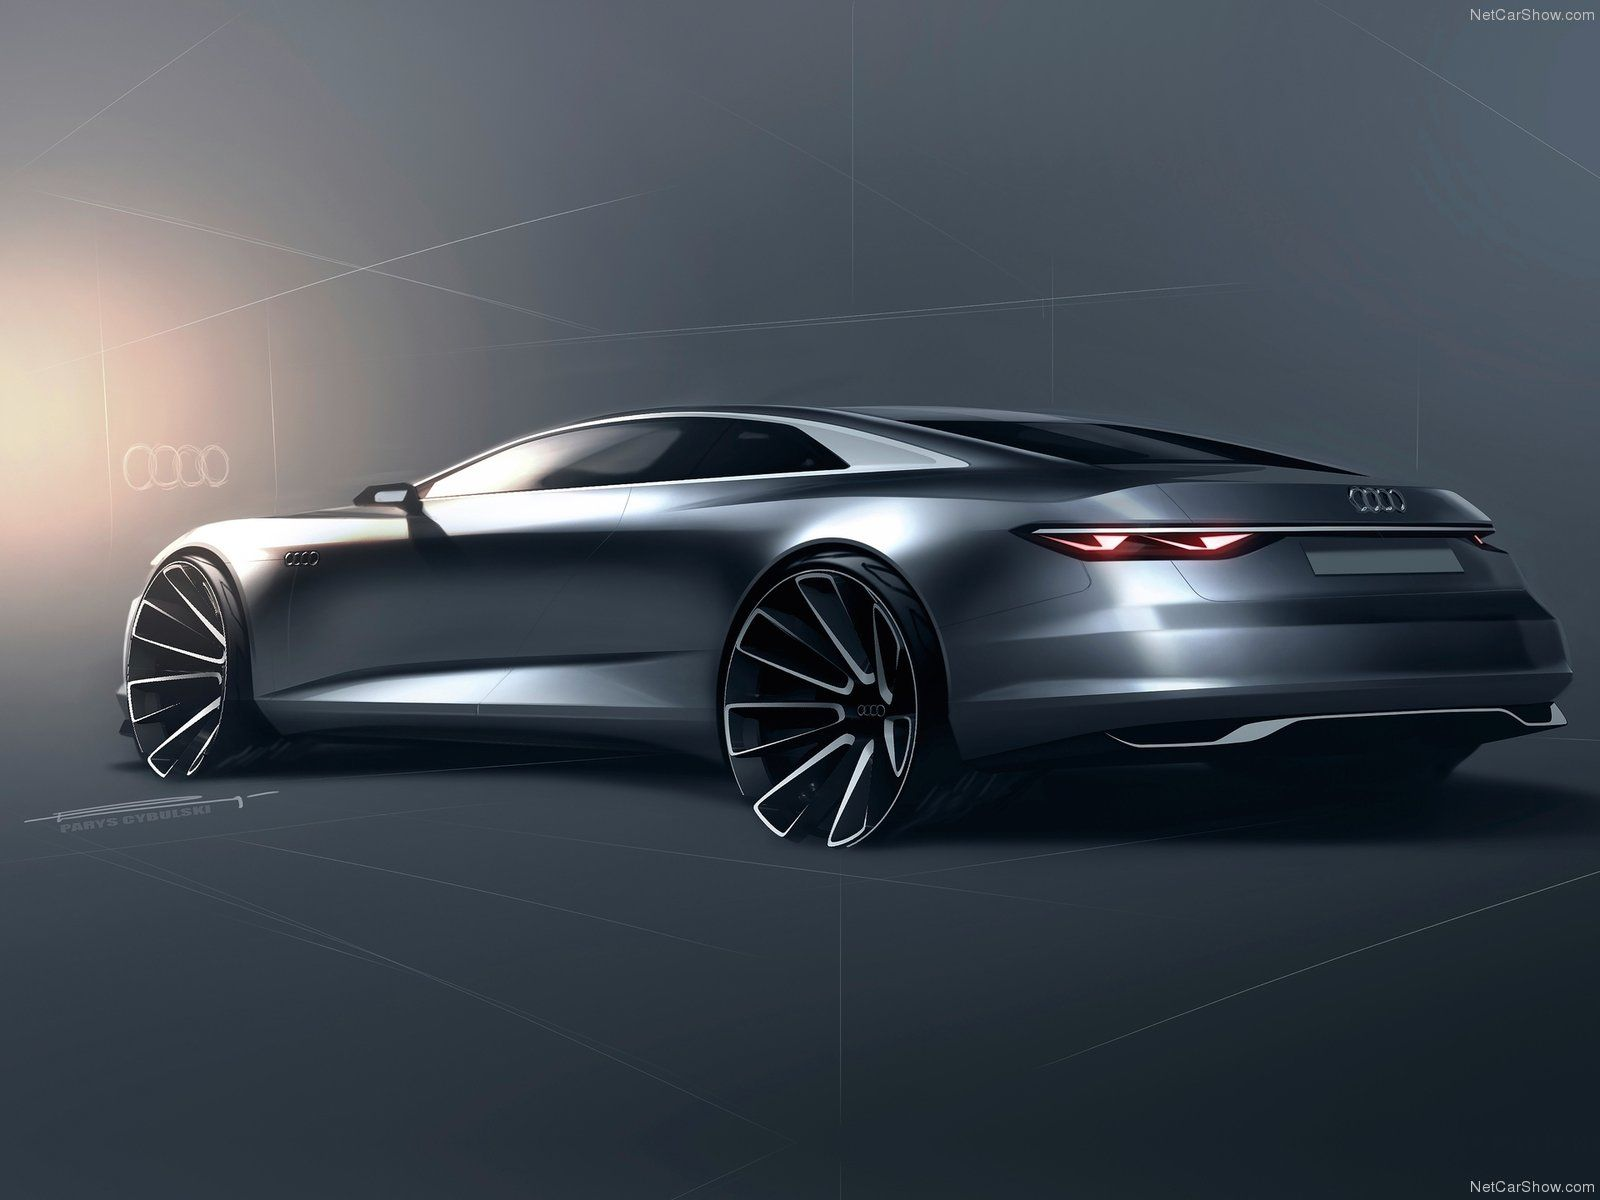 Audi Prologue Concept Sketch From Parys Cybulski Concept Car